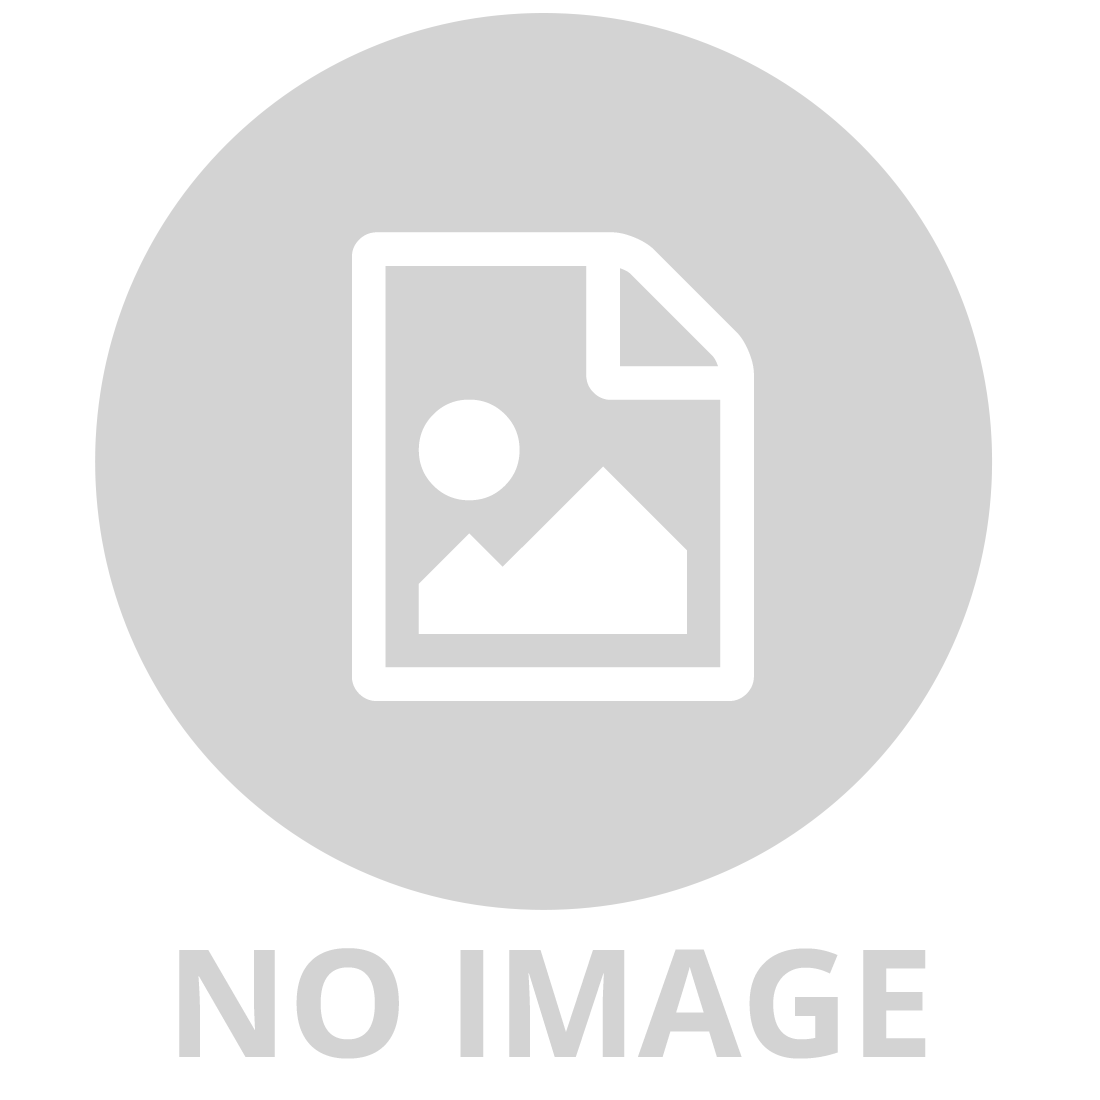 CATS AND DOGS COLOURING BOOK